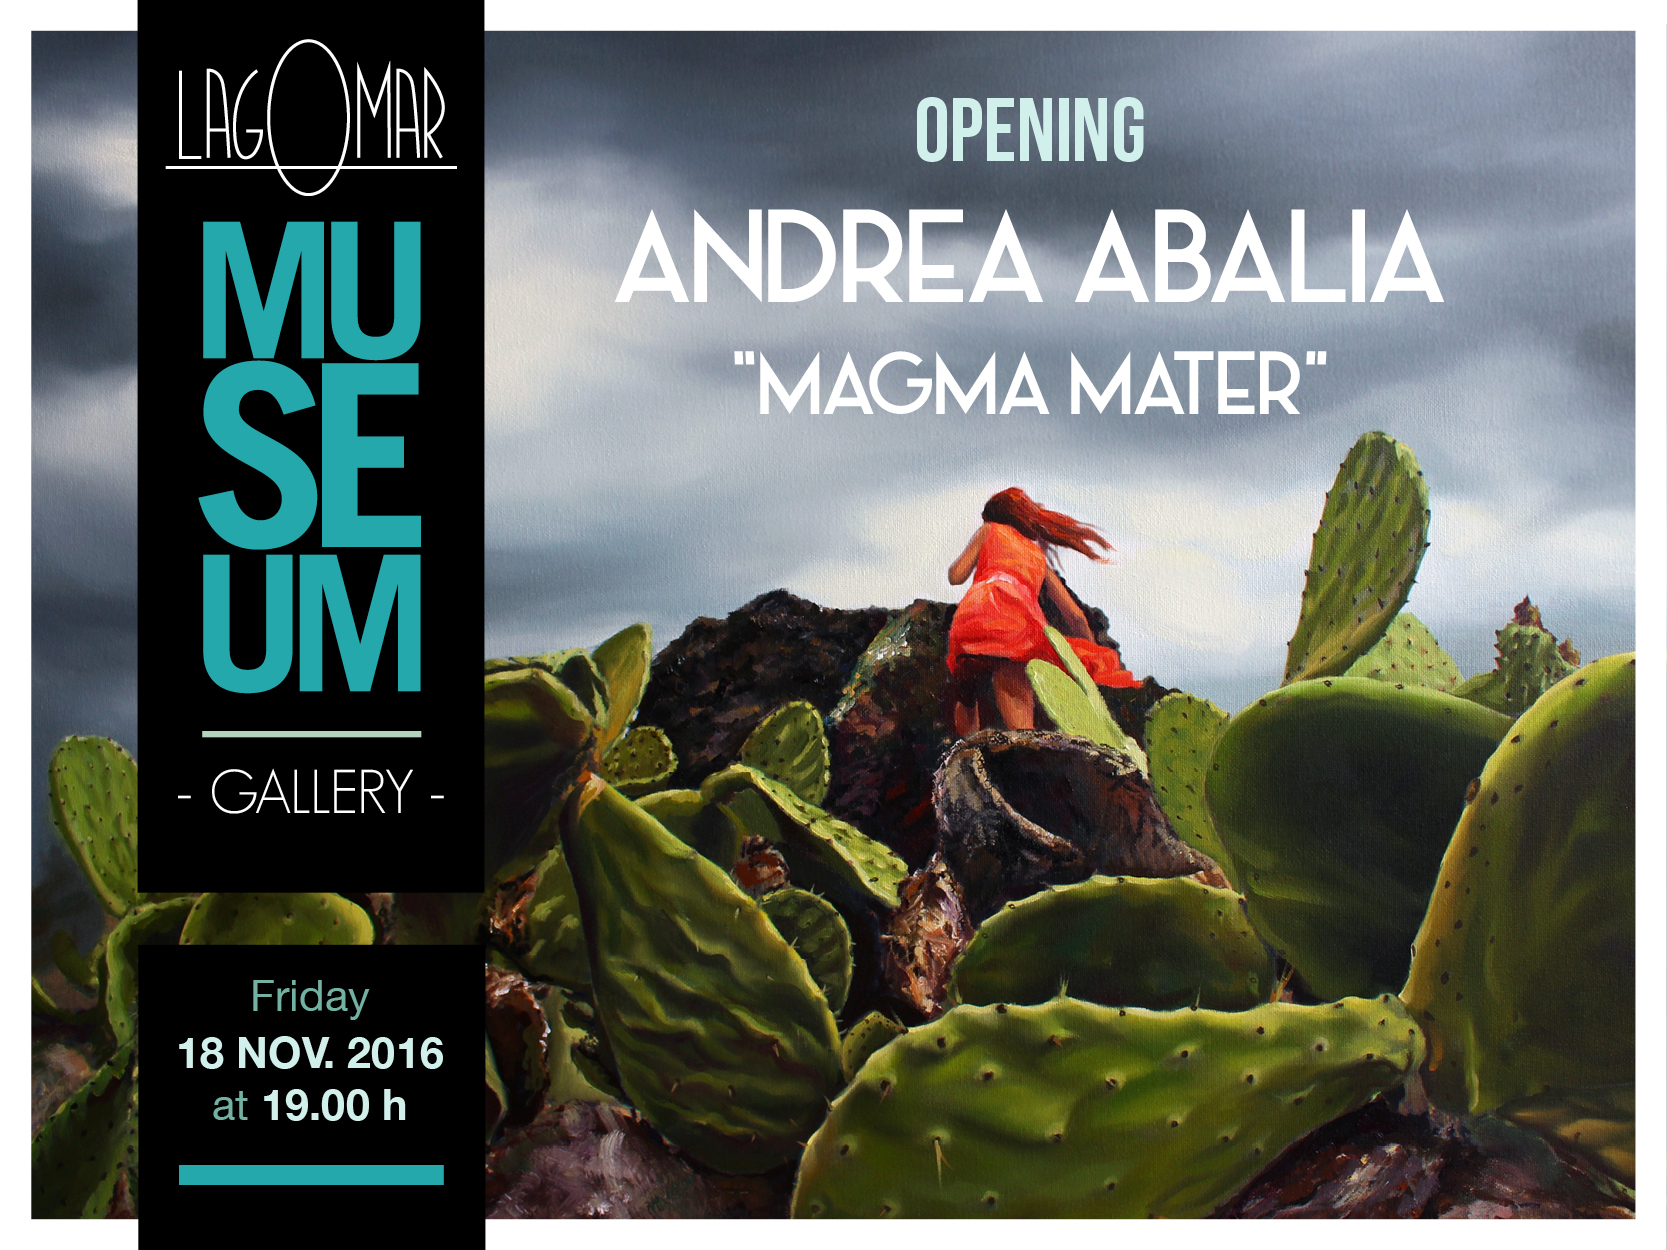 Invitation Exhibition Andrea Albalia